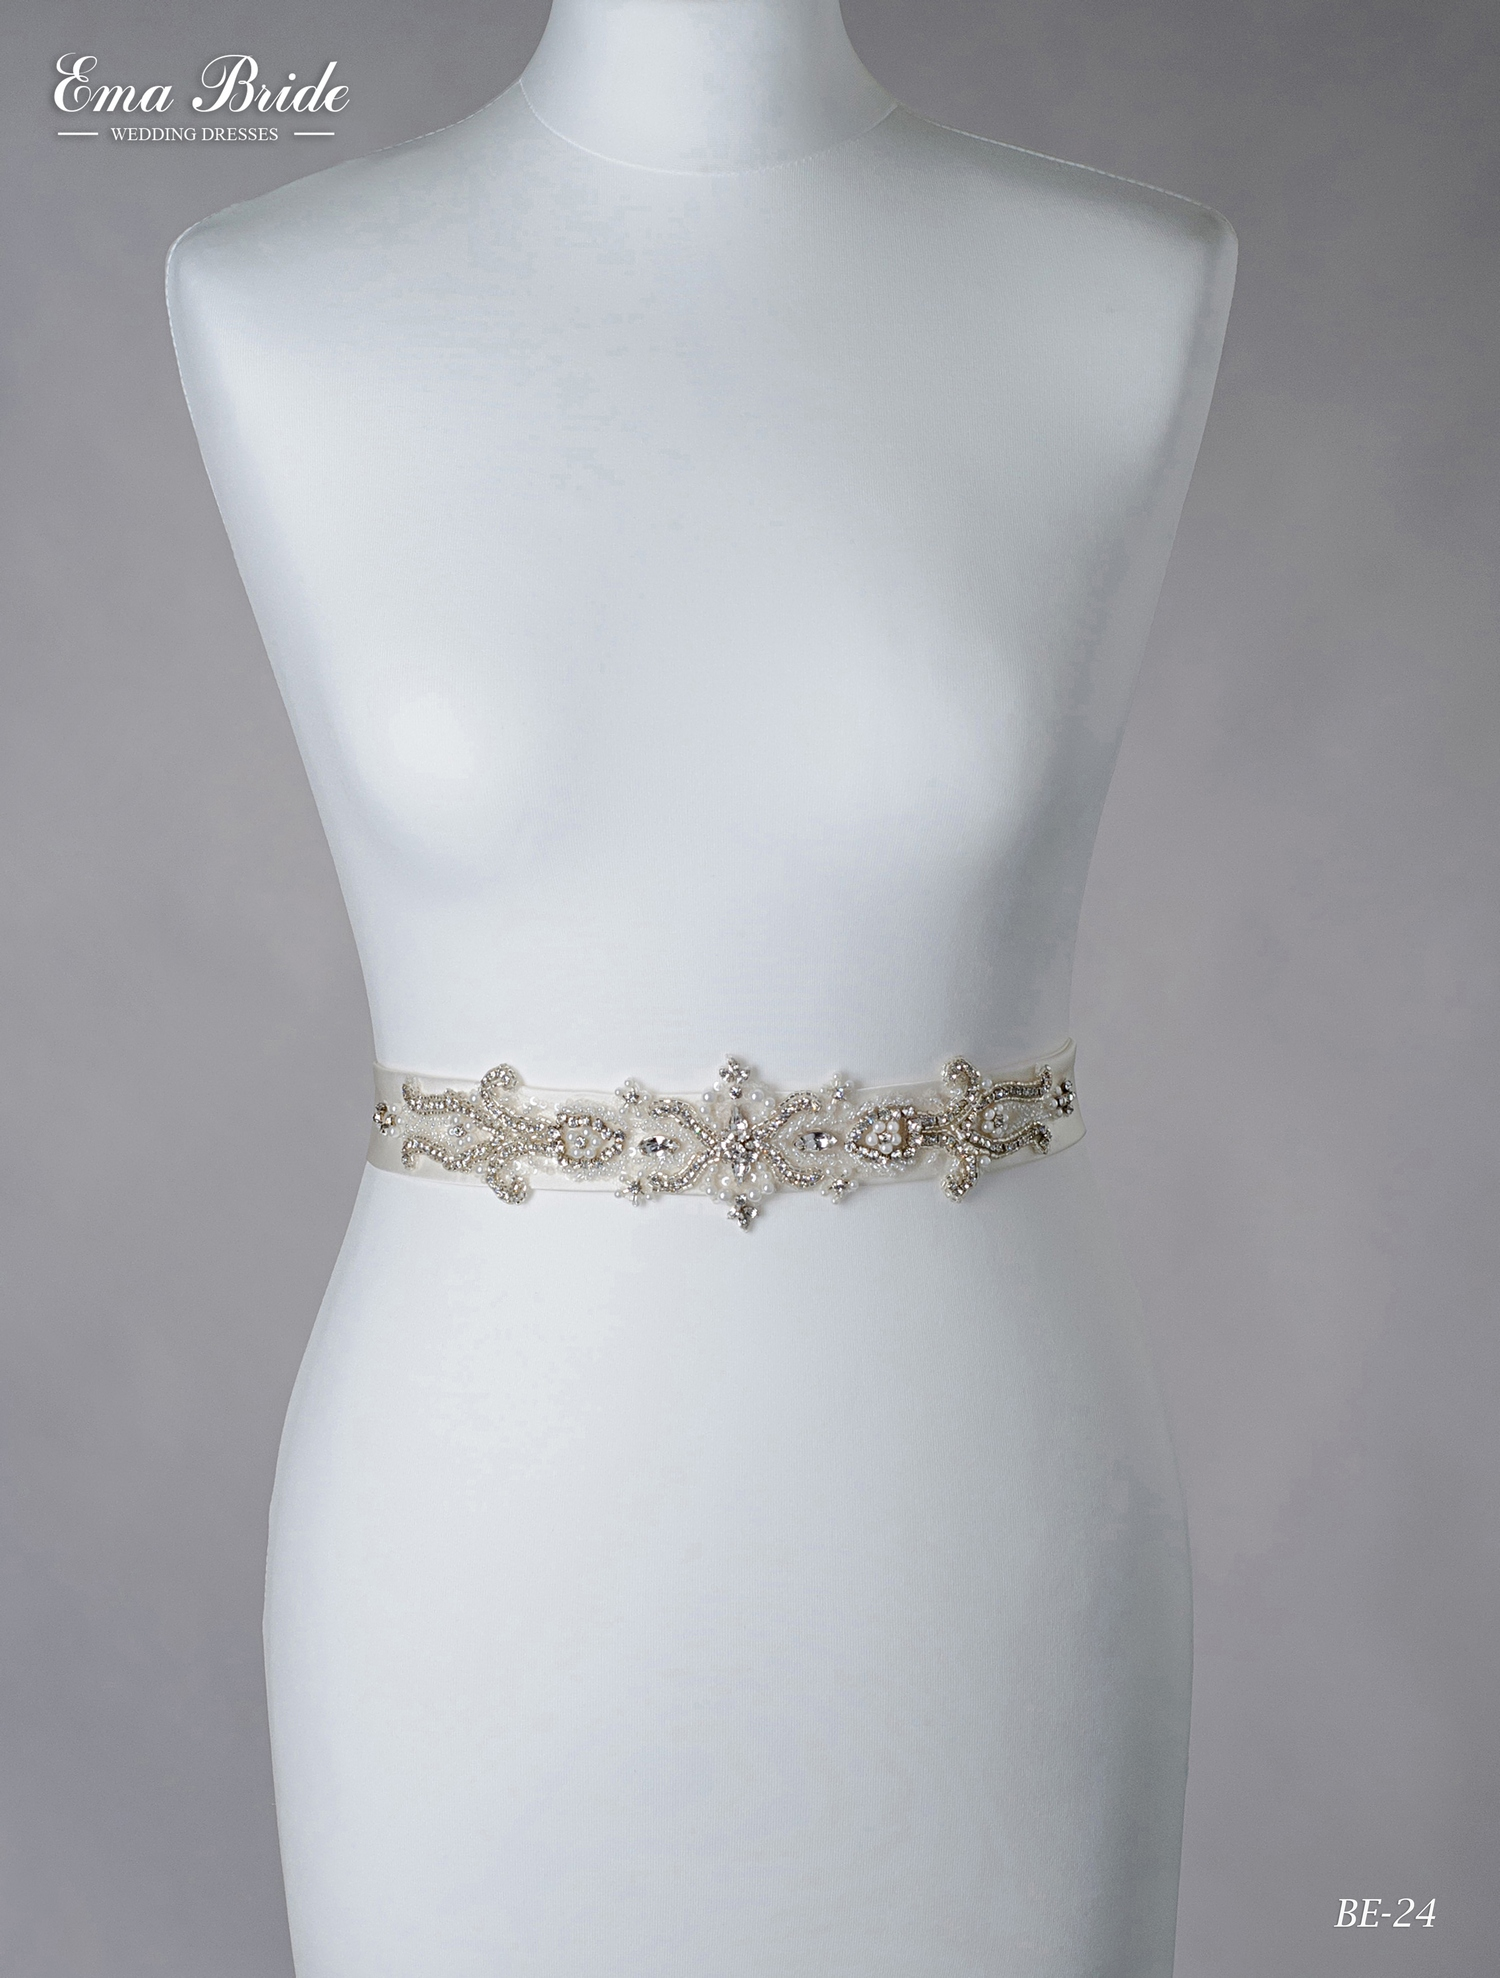 A belt for a wedding dress Be-24